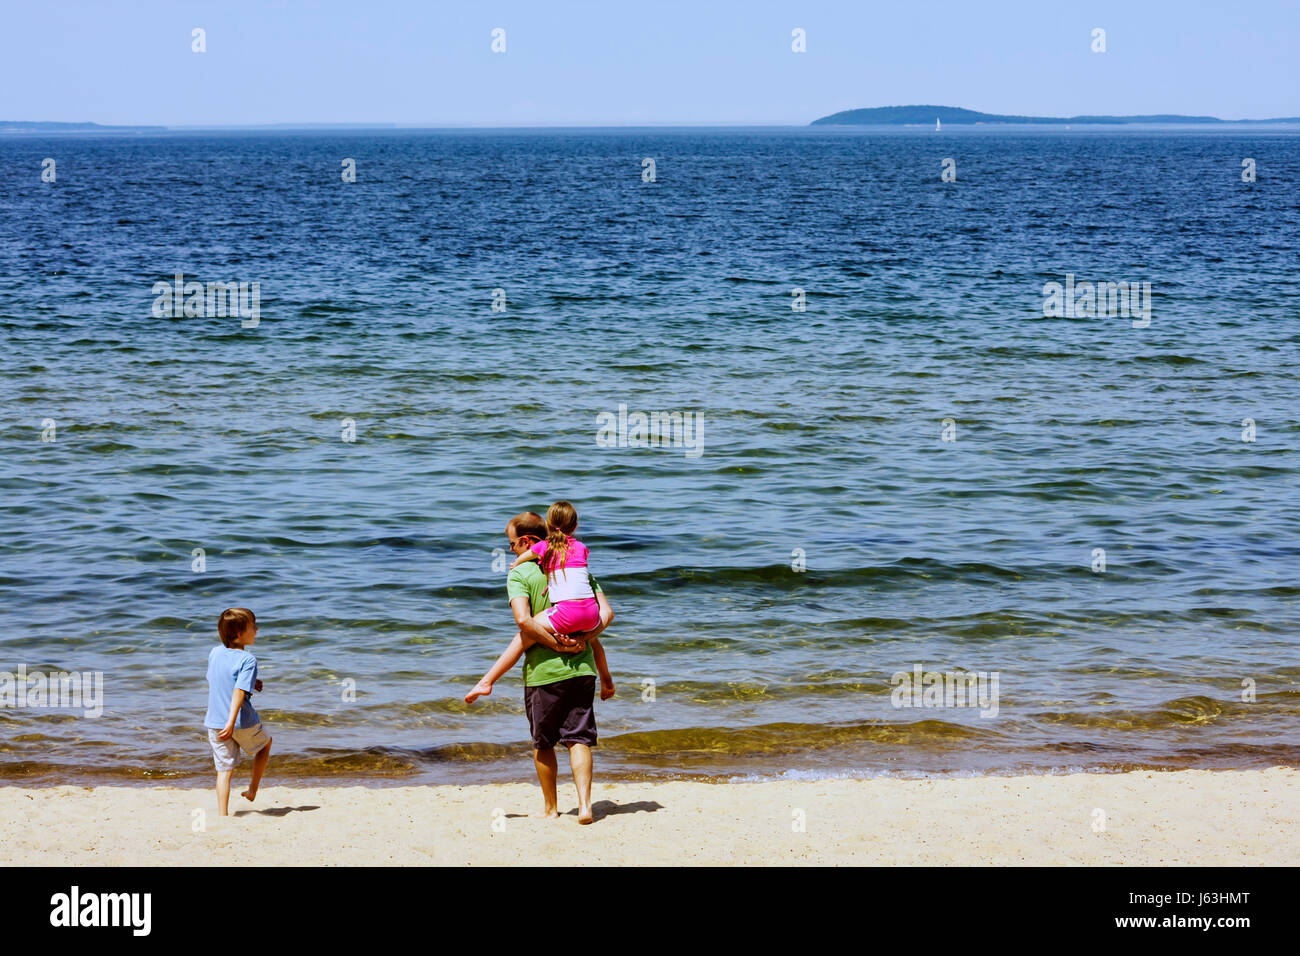 Michigan Traverse City West Arm Grand Traverse Bay Clinch Parque chico chica hombre padre hijo playa agua piggyback Imagen De Stock